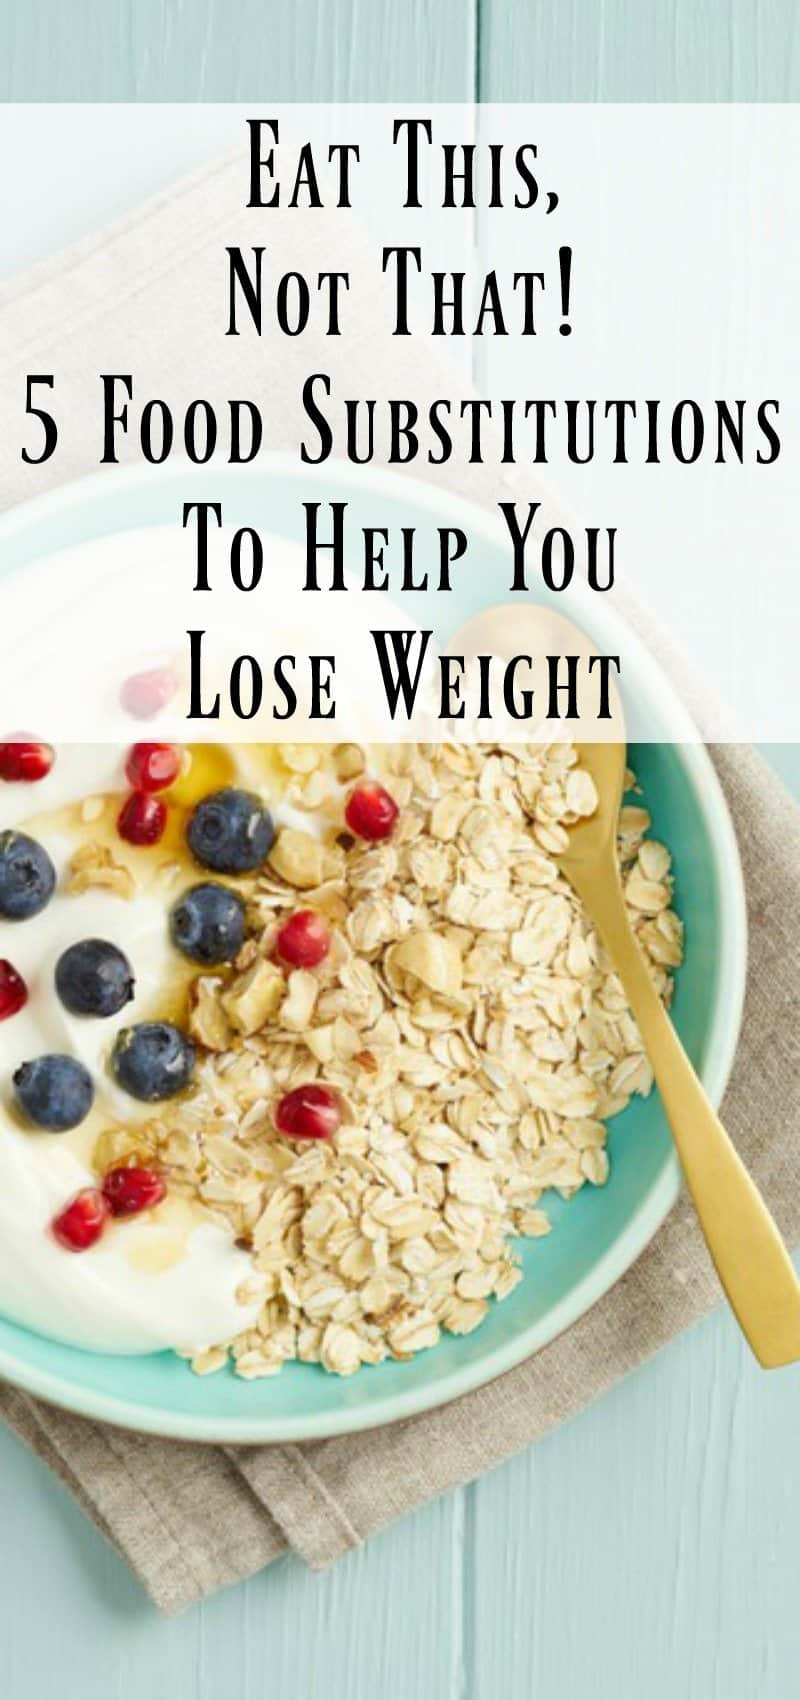 Eat This, Not 5 Food Substitutions To Help You Lose Weight